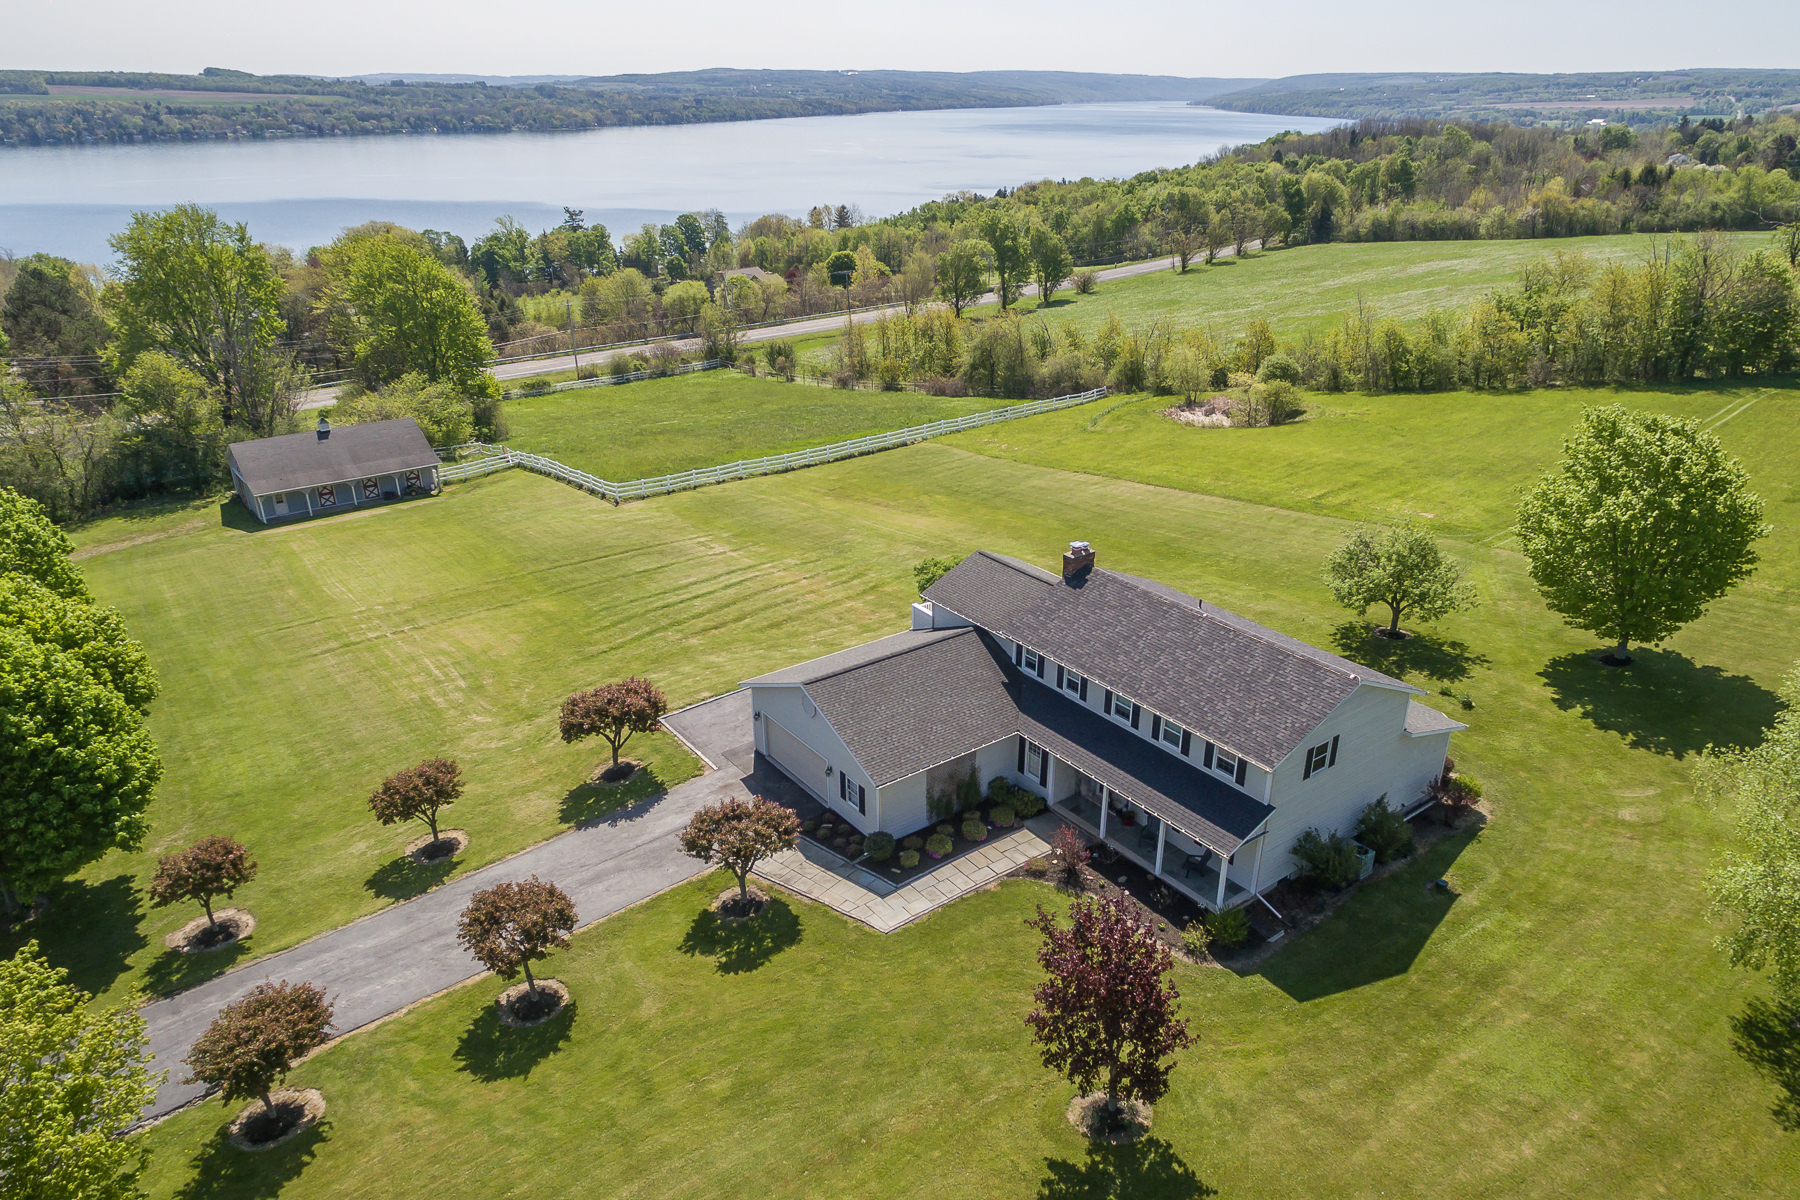 Single Family Home for Sale at Skaneateles Lake Views on 5.5 Acres 1300 Hencoop Rd Skaneateles, New York 13152 United States